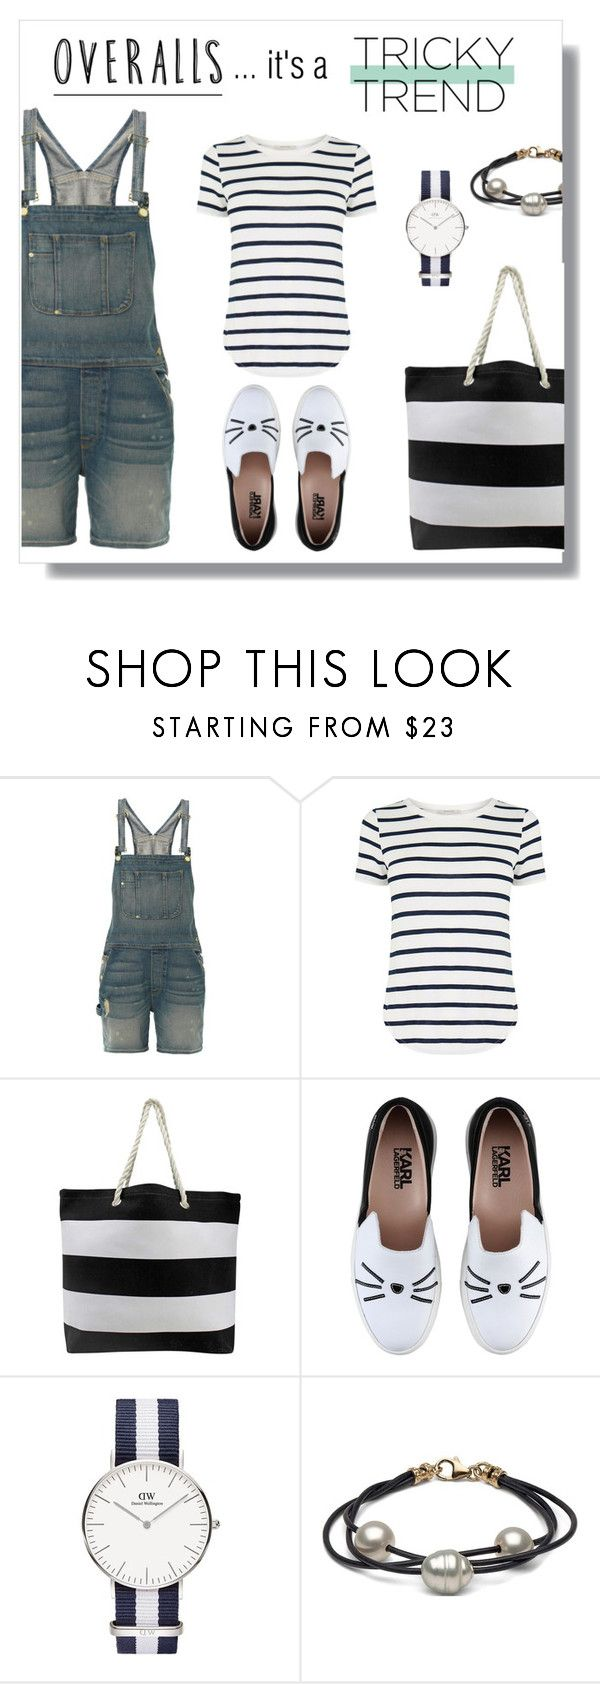 """""""Tricky, tricky trend... the overalls"""" by beautifulgirlsblog on Polyvore featuring Frame Denim, Oasis, Karl Lagerfeld, TrickyTrend and overalls"""